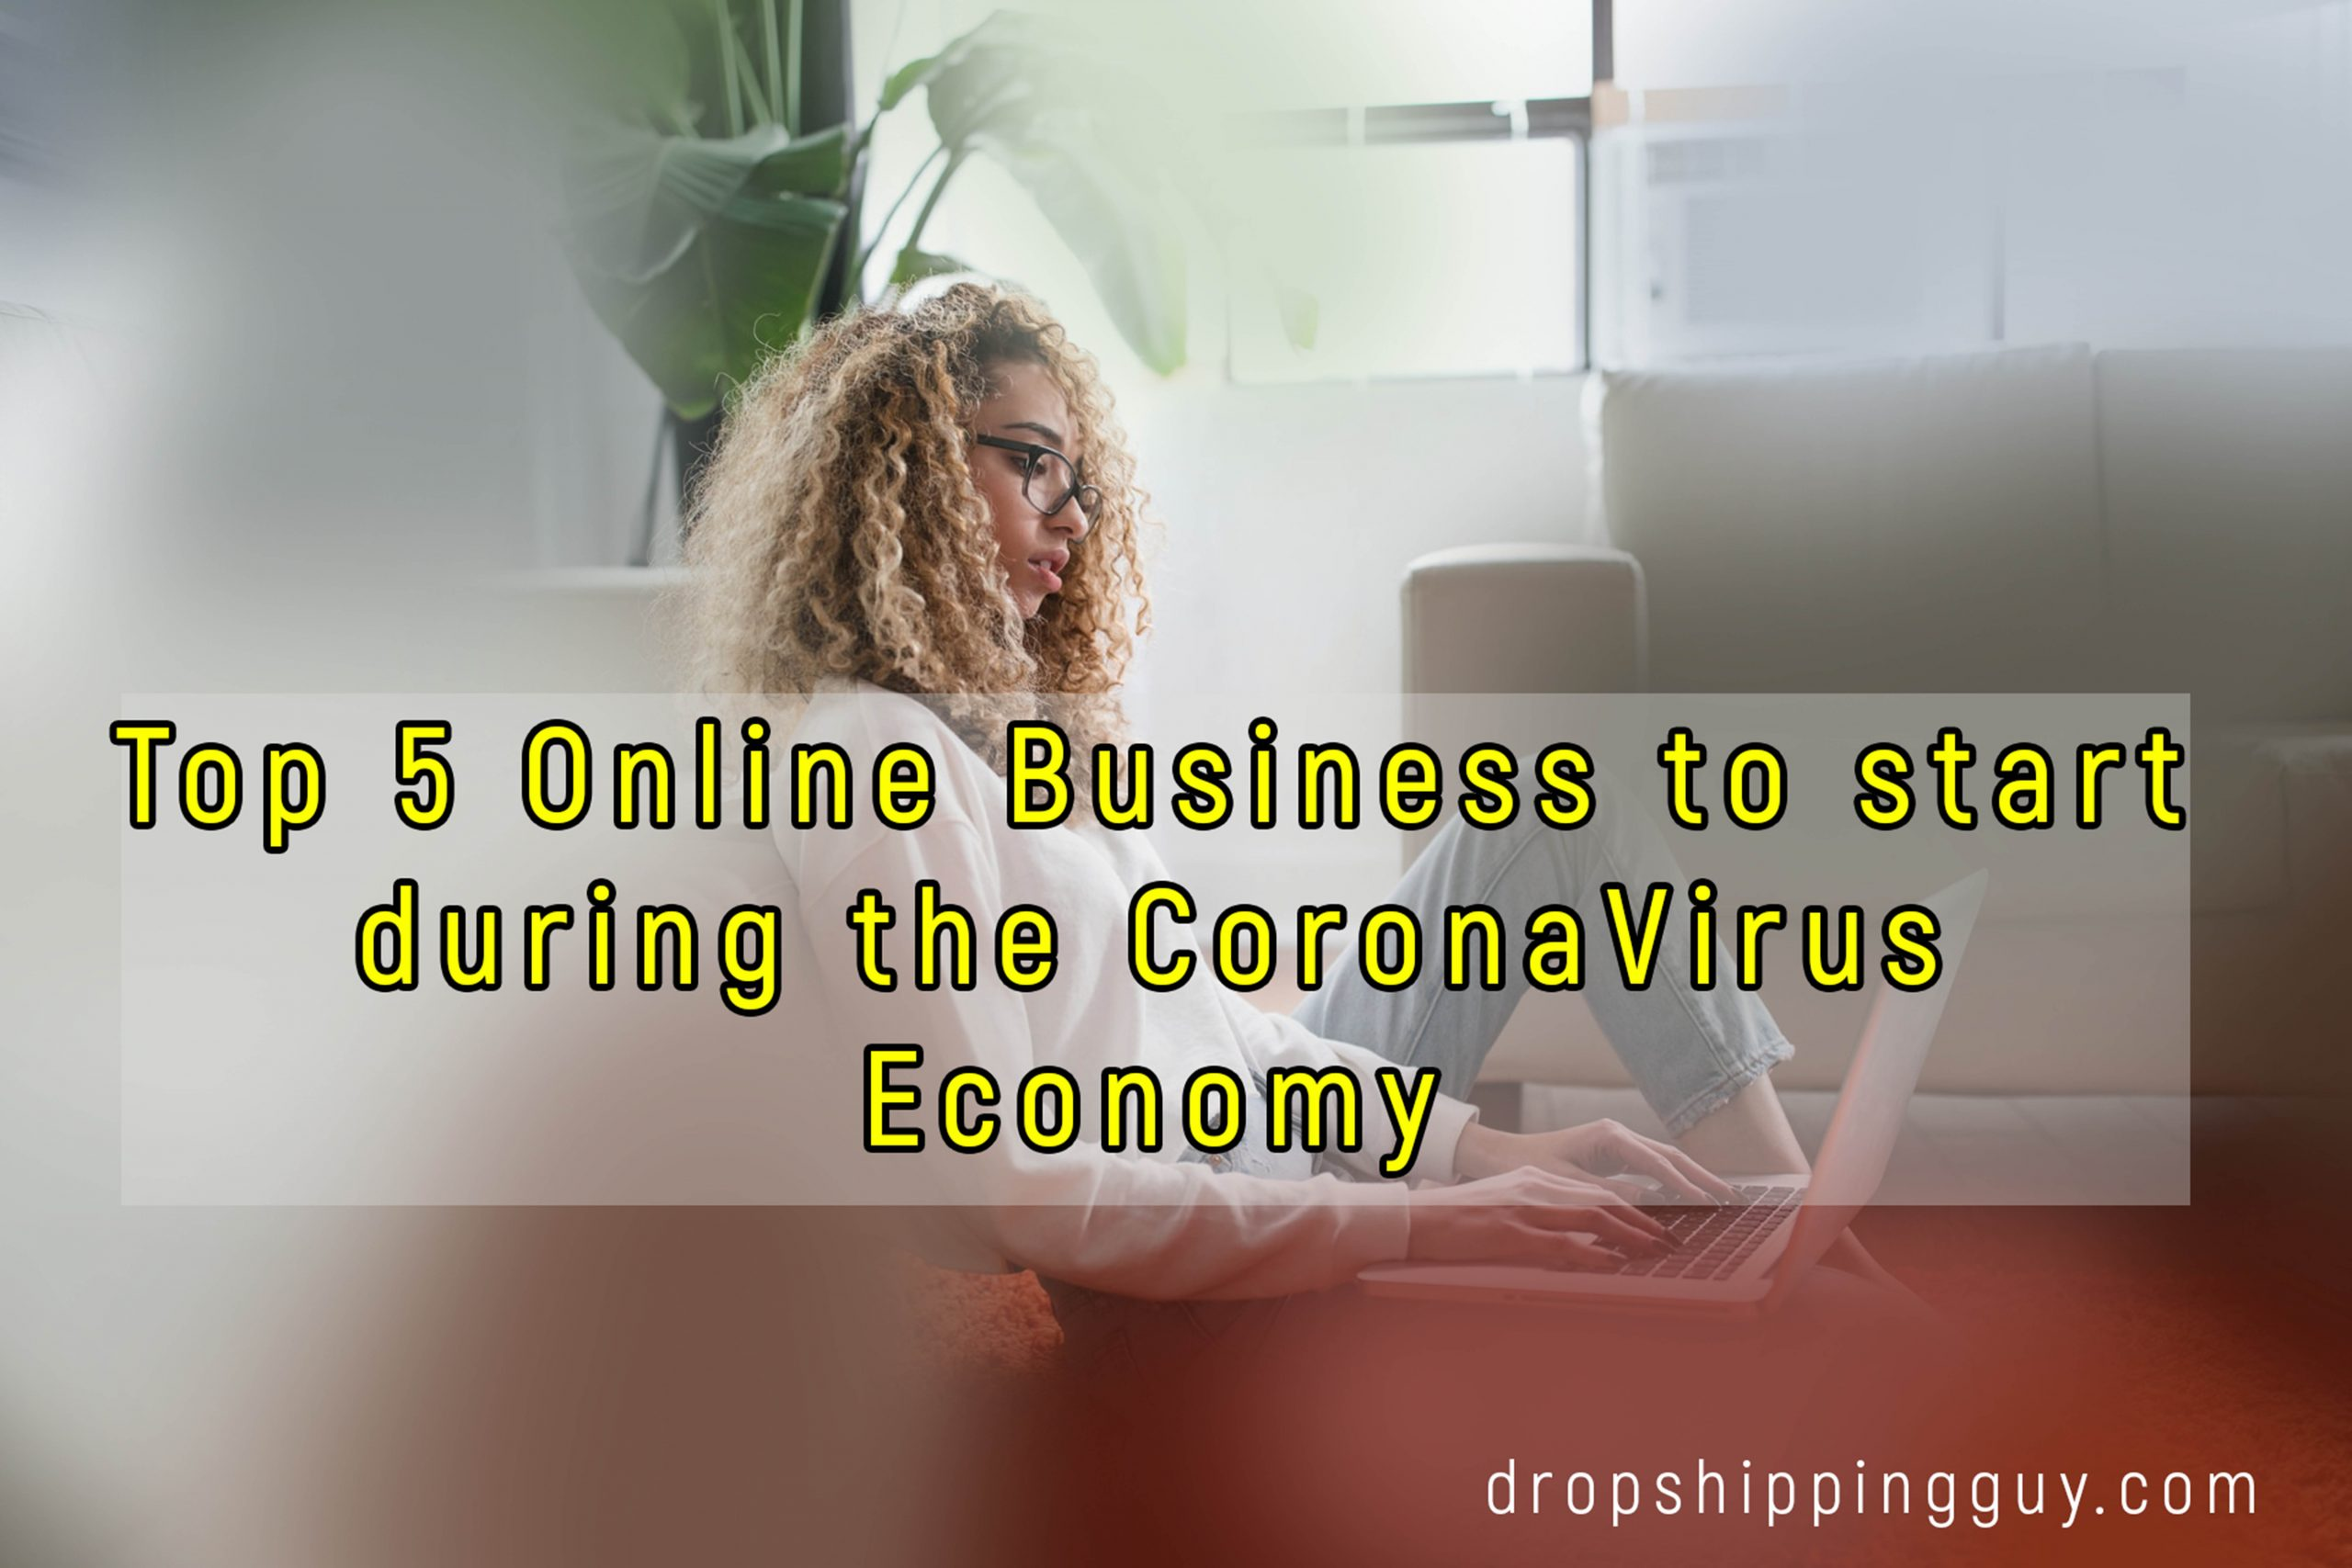 Top 5 online business ideas for the coronavirus economy